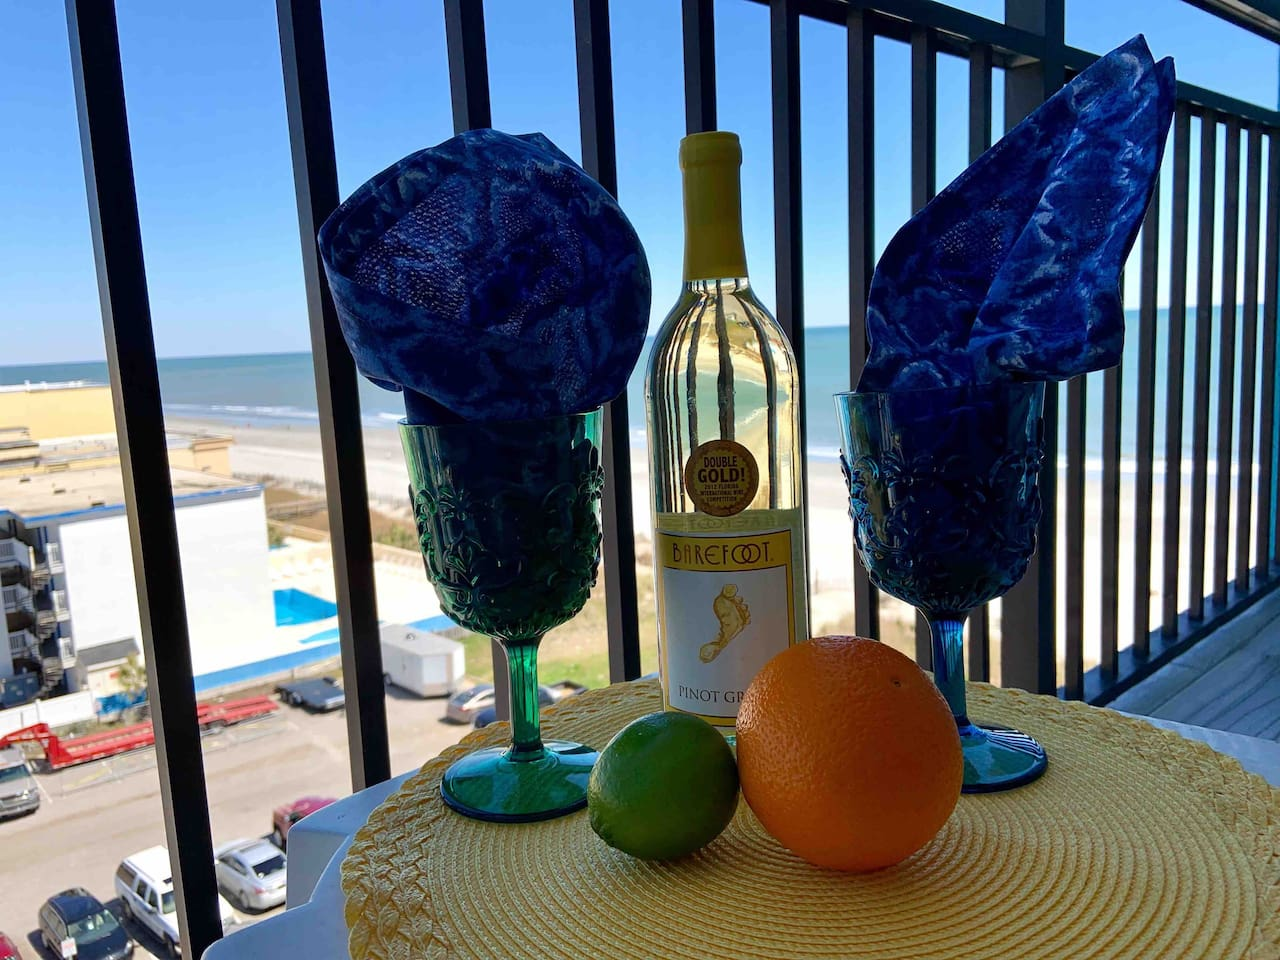 Pour yourself a glass of chilled wine...Sit back and enjoy  stunning views of the Atlantic Ocean from your private balcony.